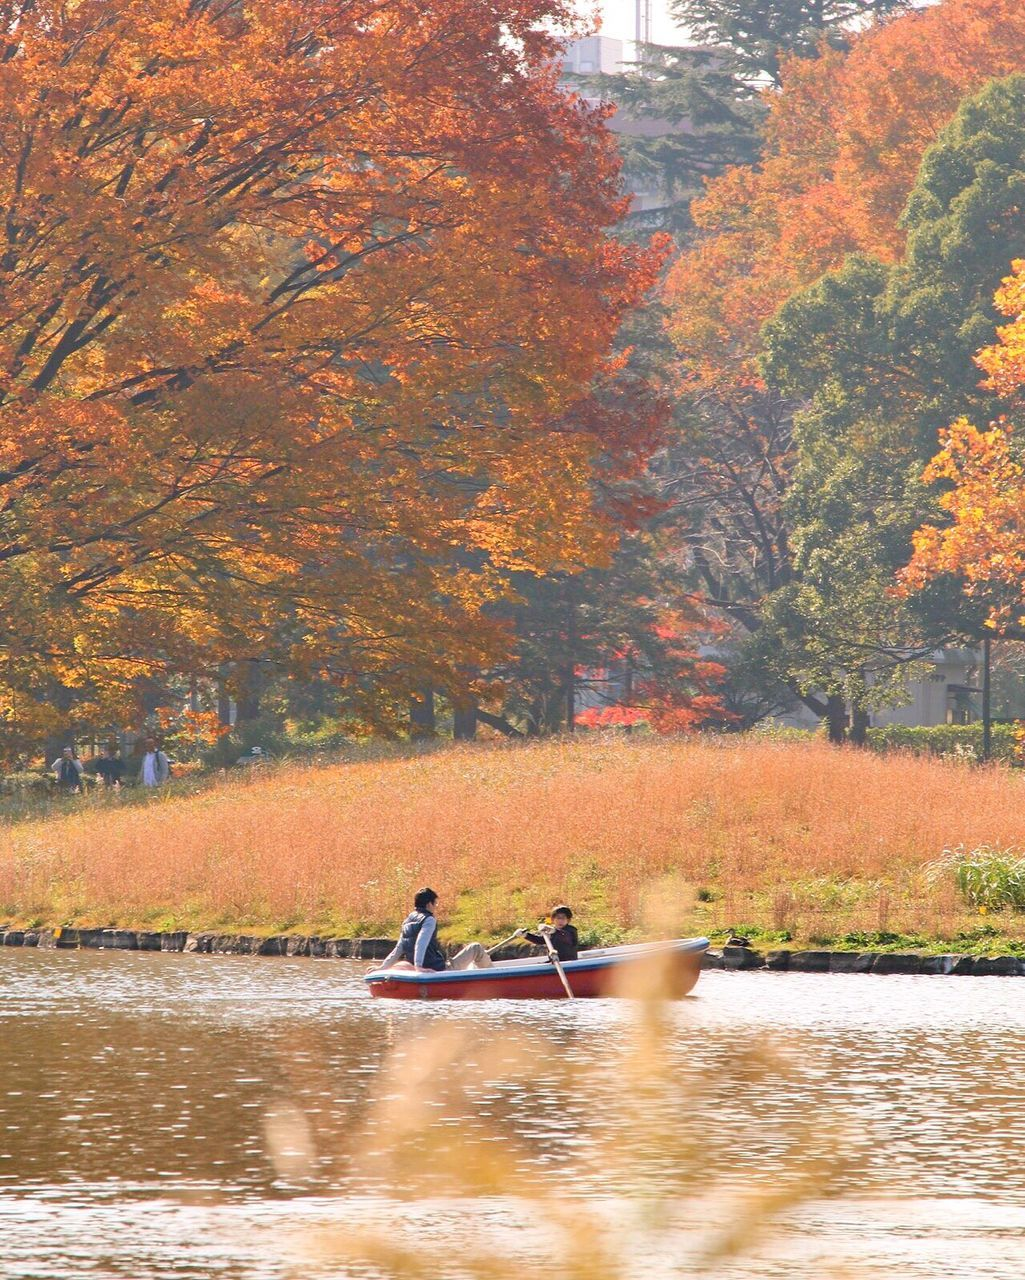 autumn, tree, nature, water, forest, lake, kayak, beauty in nature, change, scenics, outdoors, leaf, two people, adult, day, leisure activity, oar, sitting, sport, nautical vessel, rowing, people, men, adults only, golf course, sportsman, only men